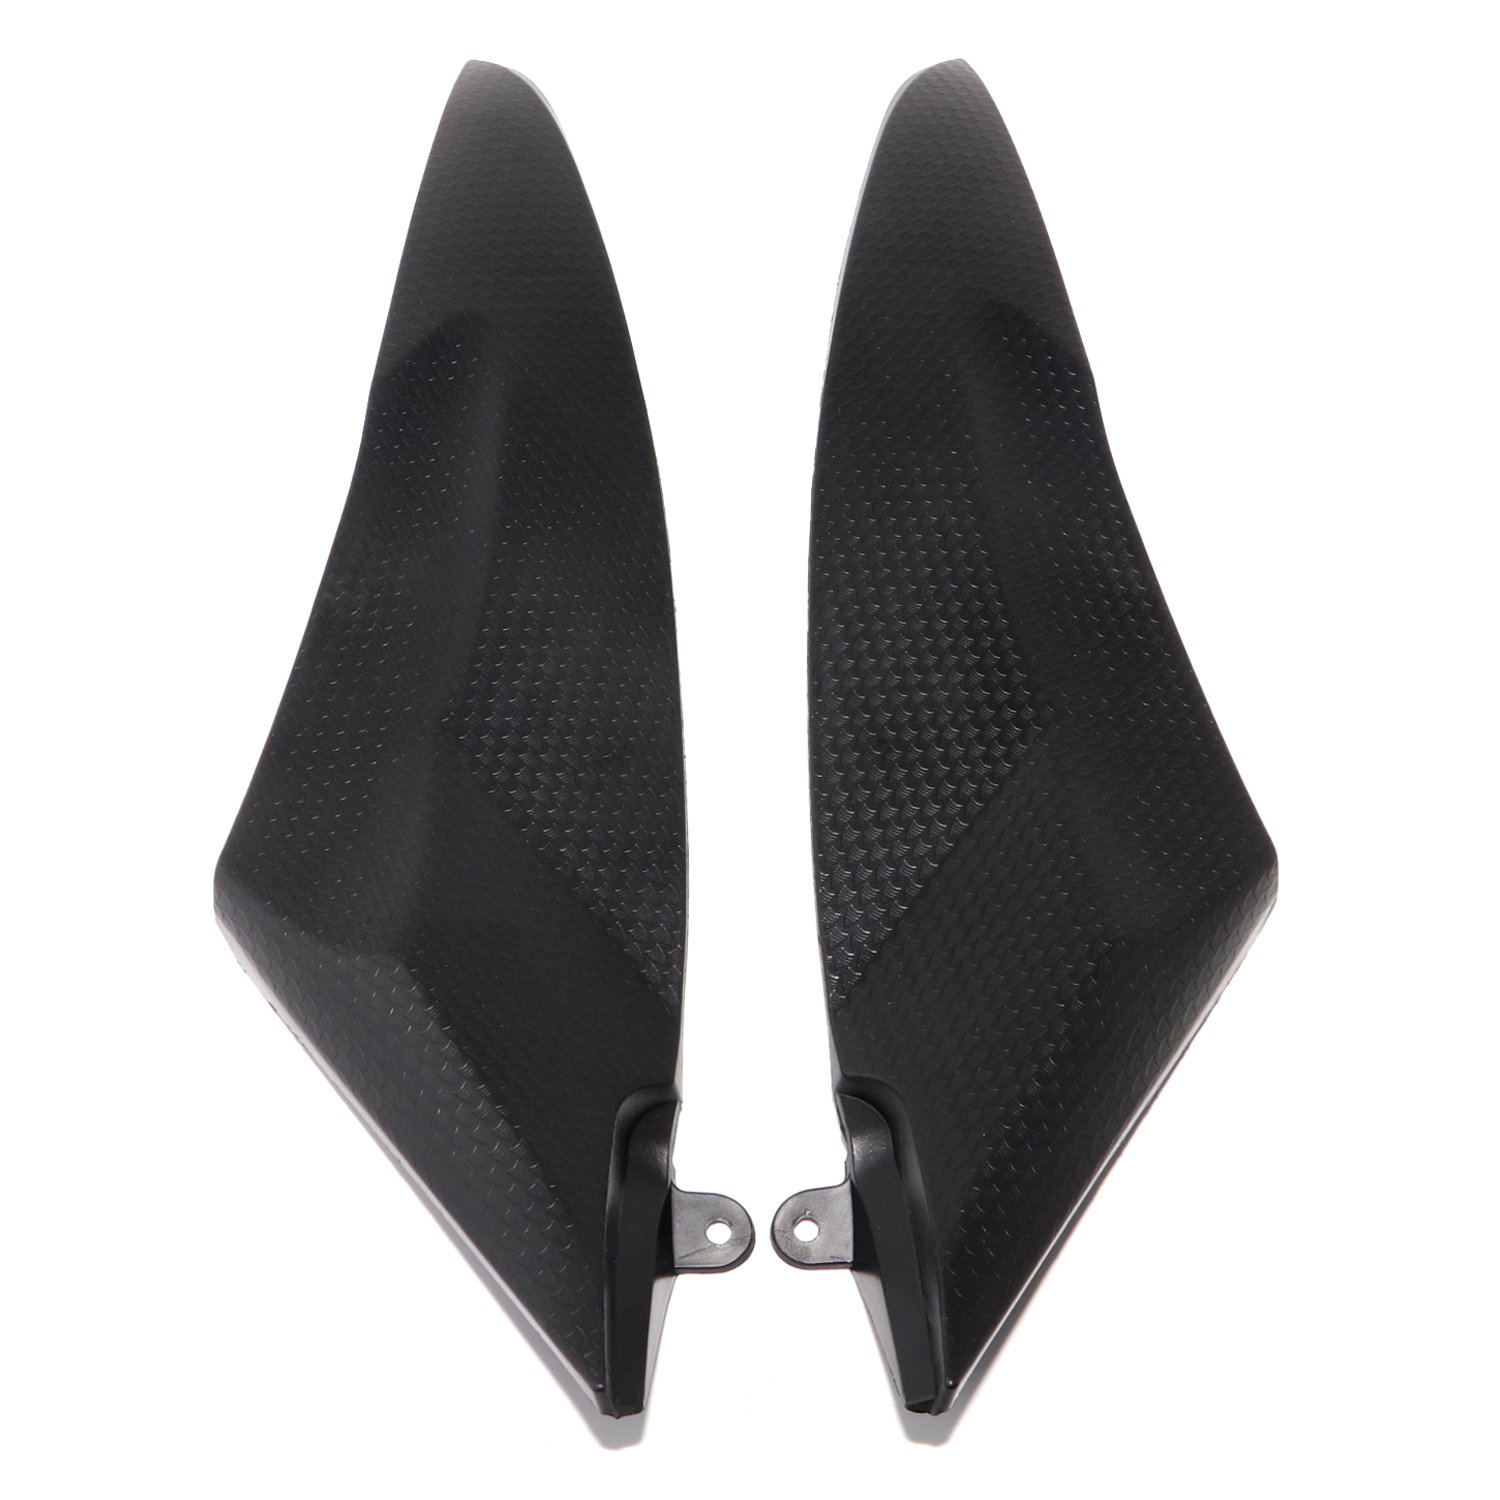 Senkauto 2 Pcs Gas Tank Side Fairing Panel Guard Cover for Yamaha YZF R6 2006 2007